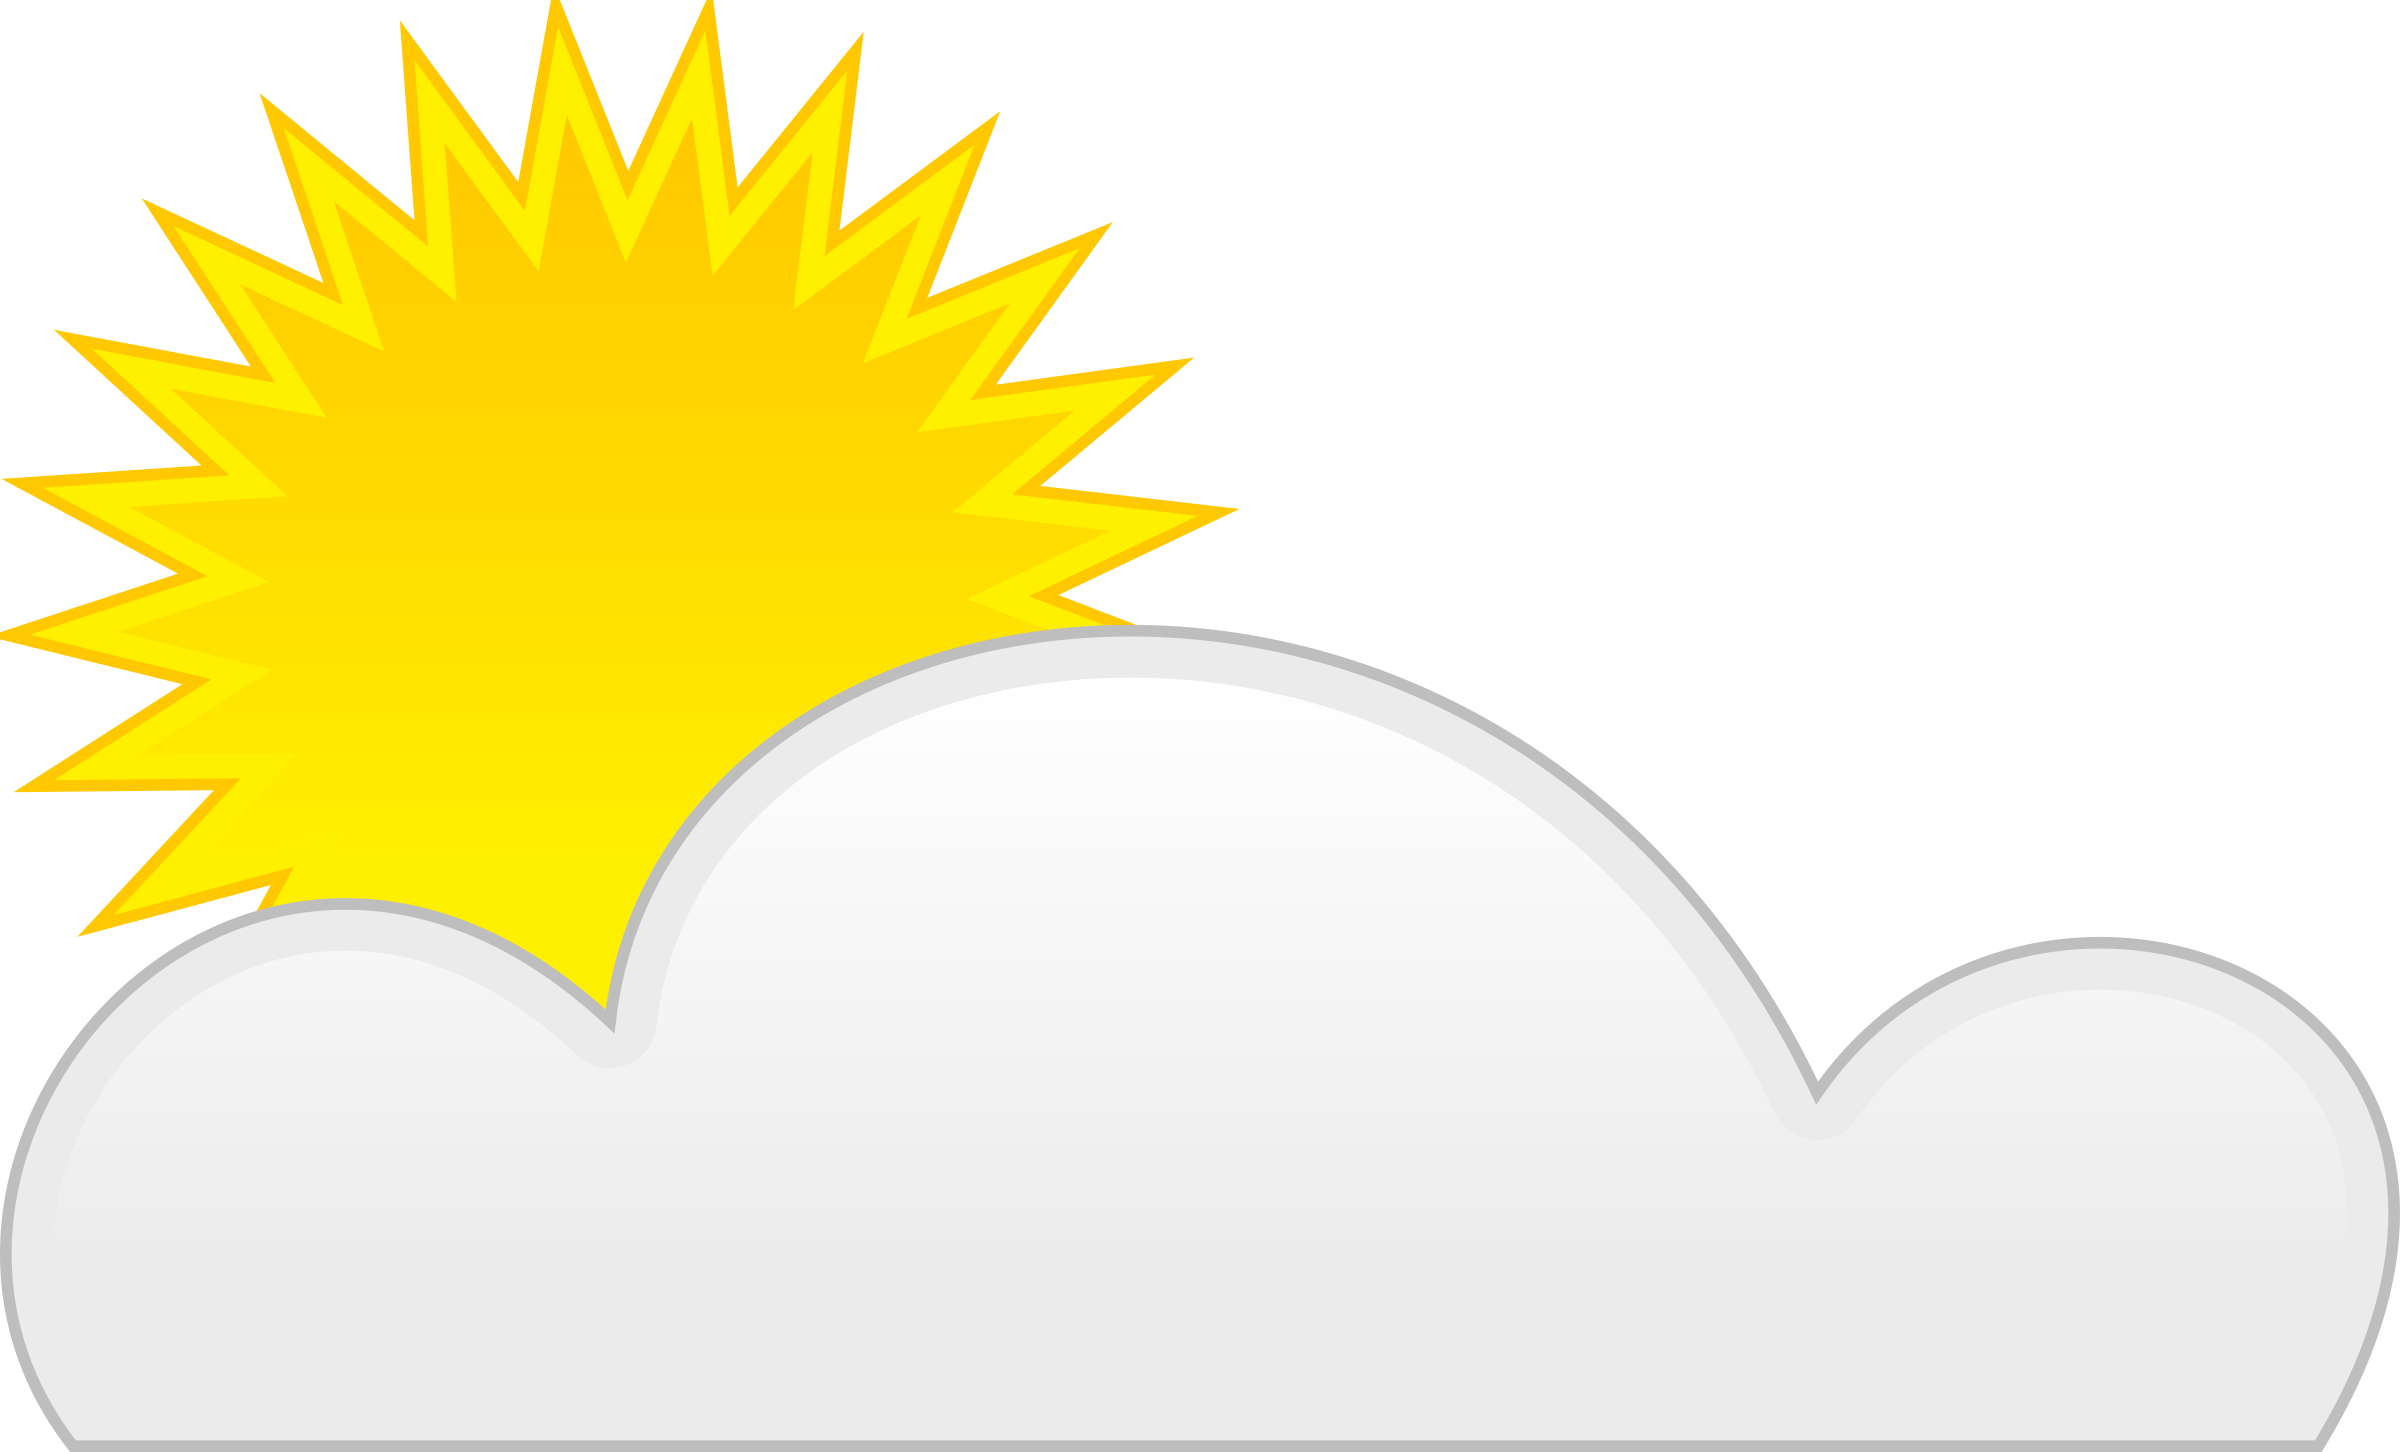 Sun and clouds clipart png black and white library Clipart - sun cloud black and white library